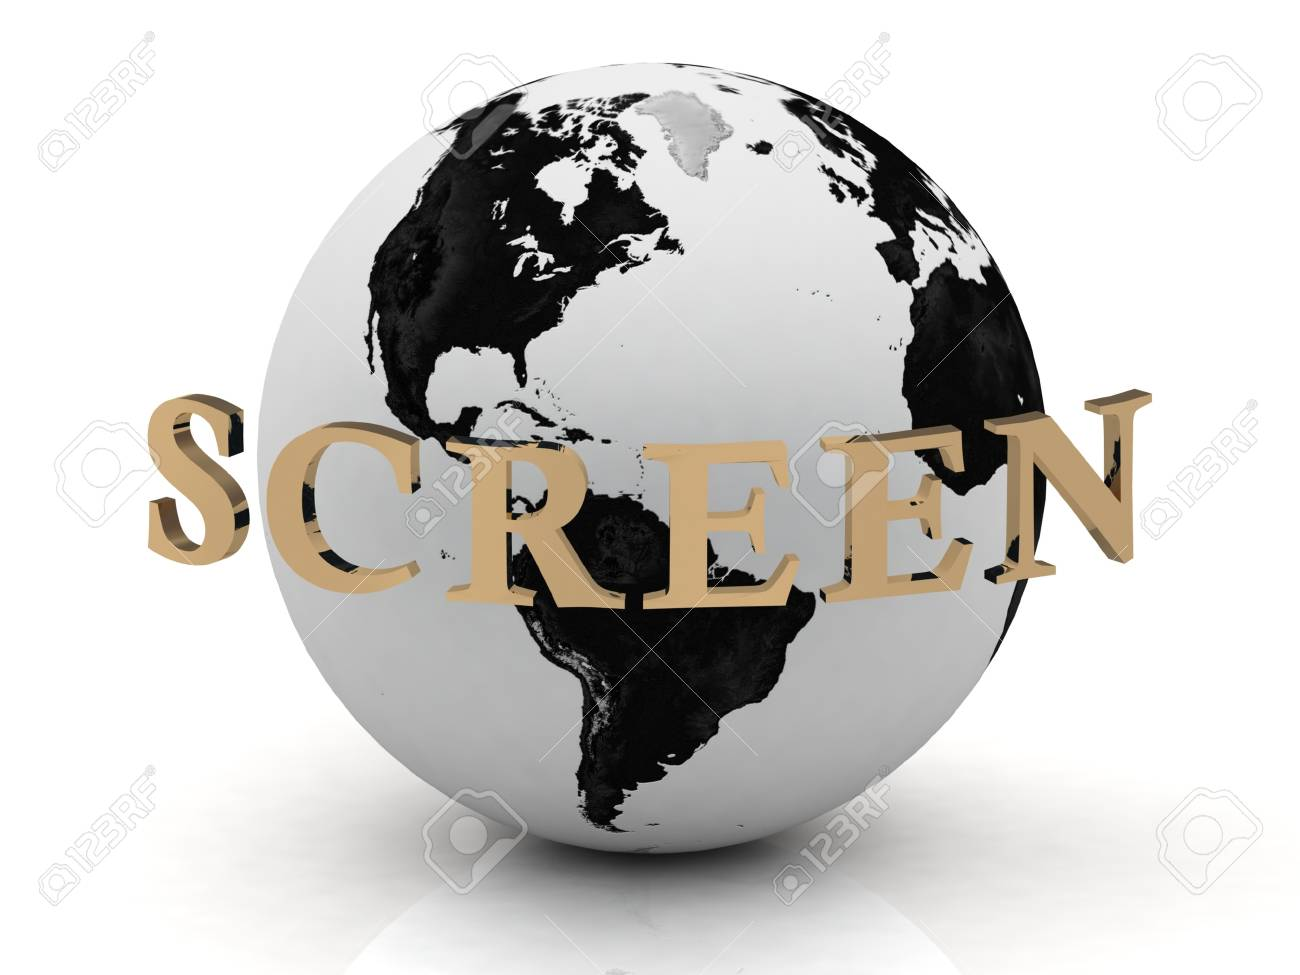 SCREEN abstraction inscription around earth on a white background Stock Photo - 14690333